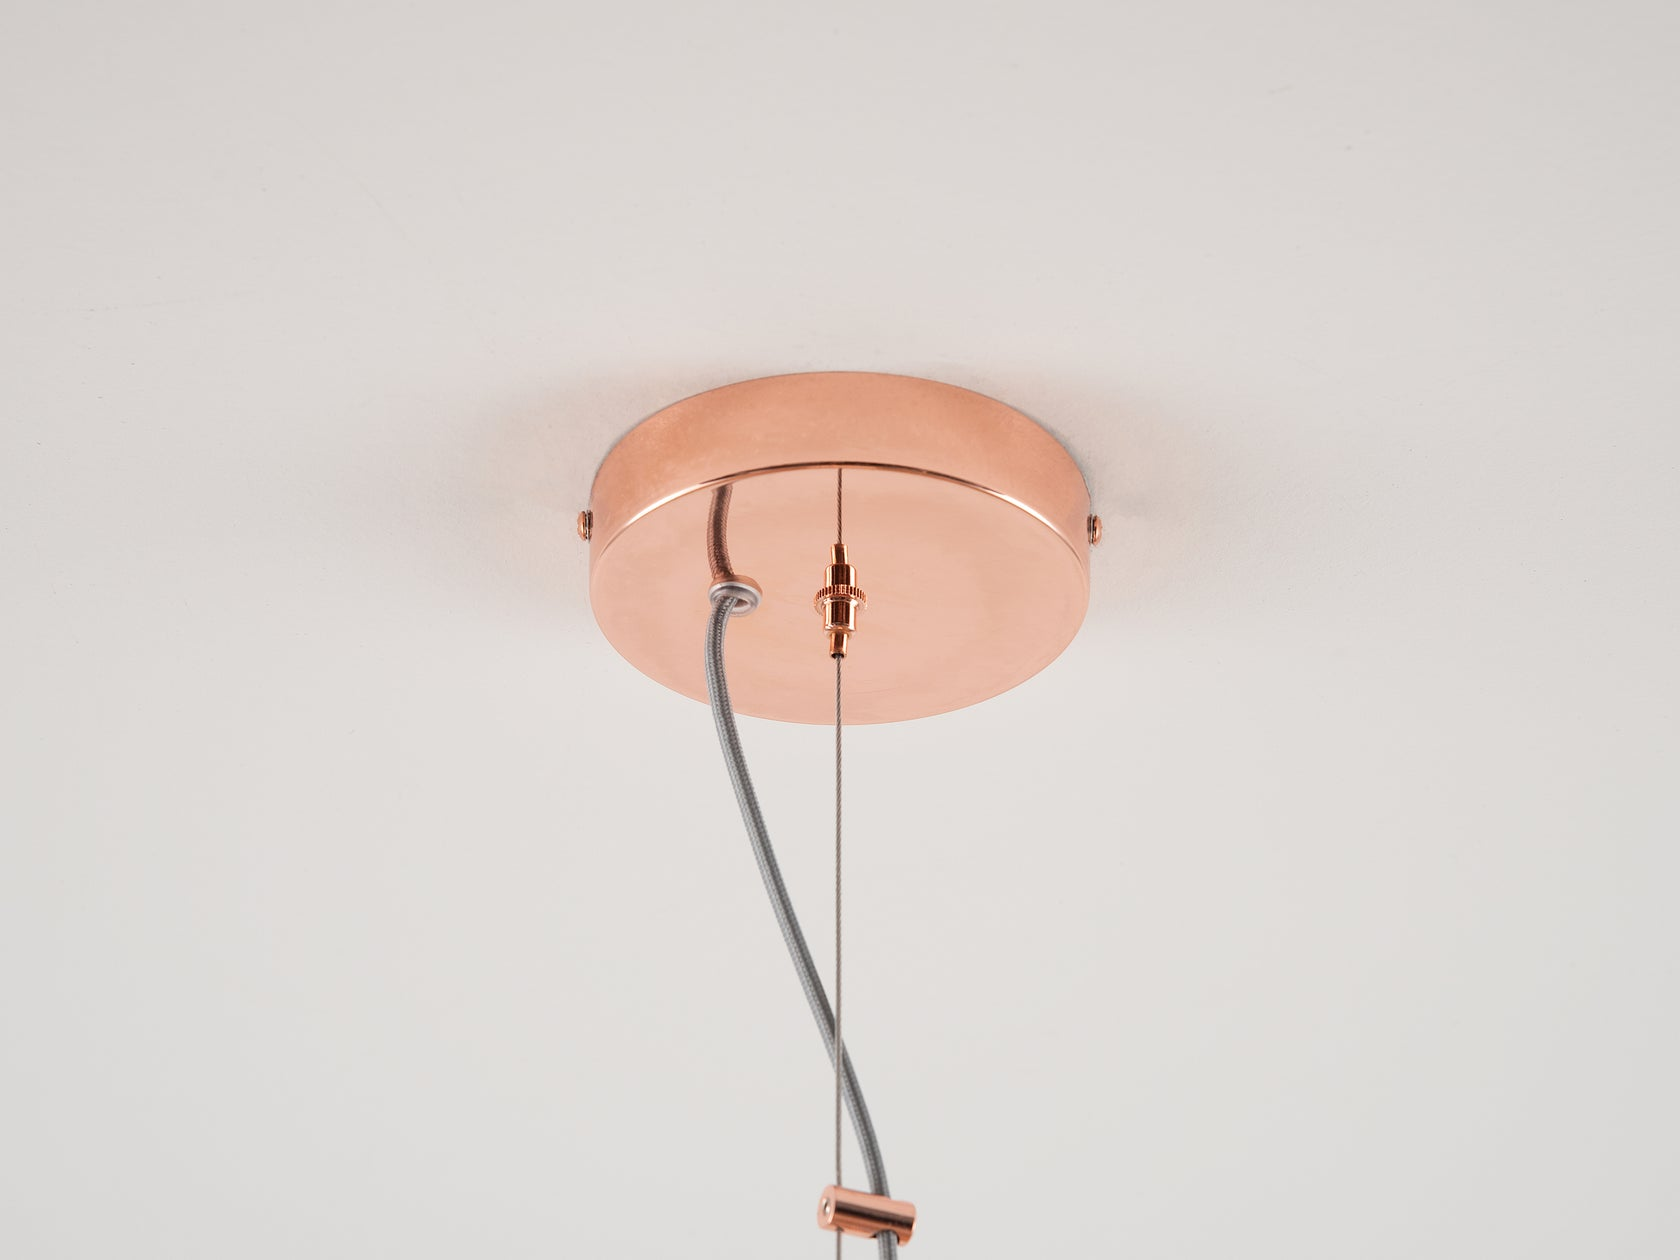 Cage pendant ceiling light copper | cup | houseof.com